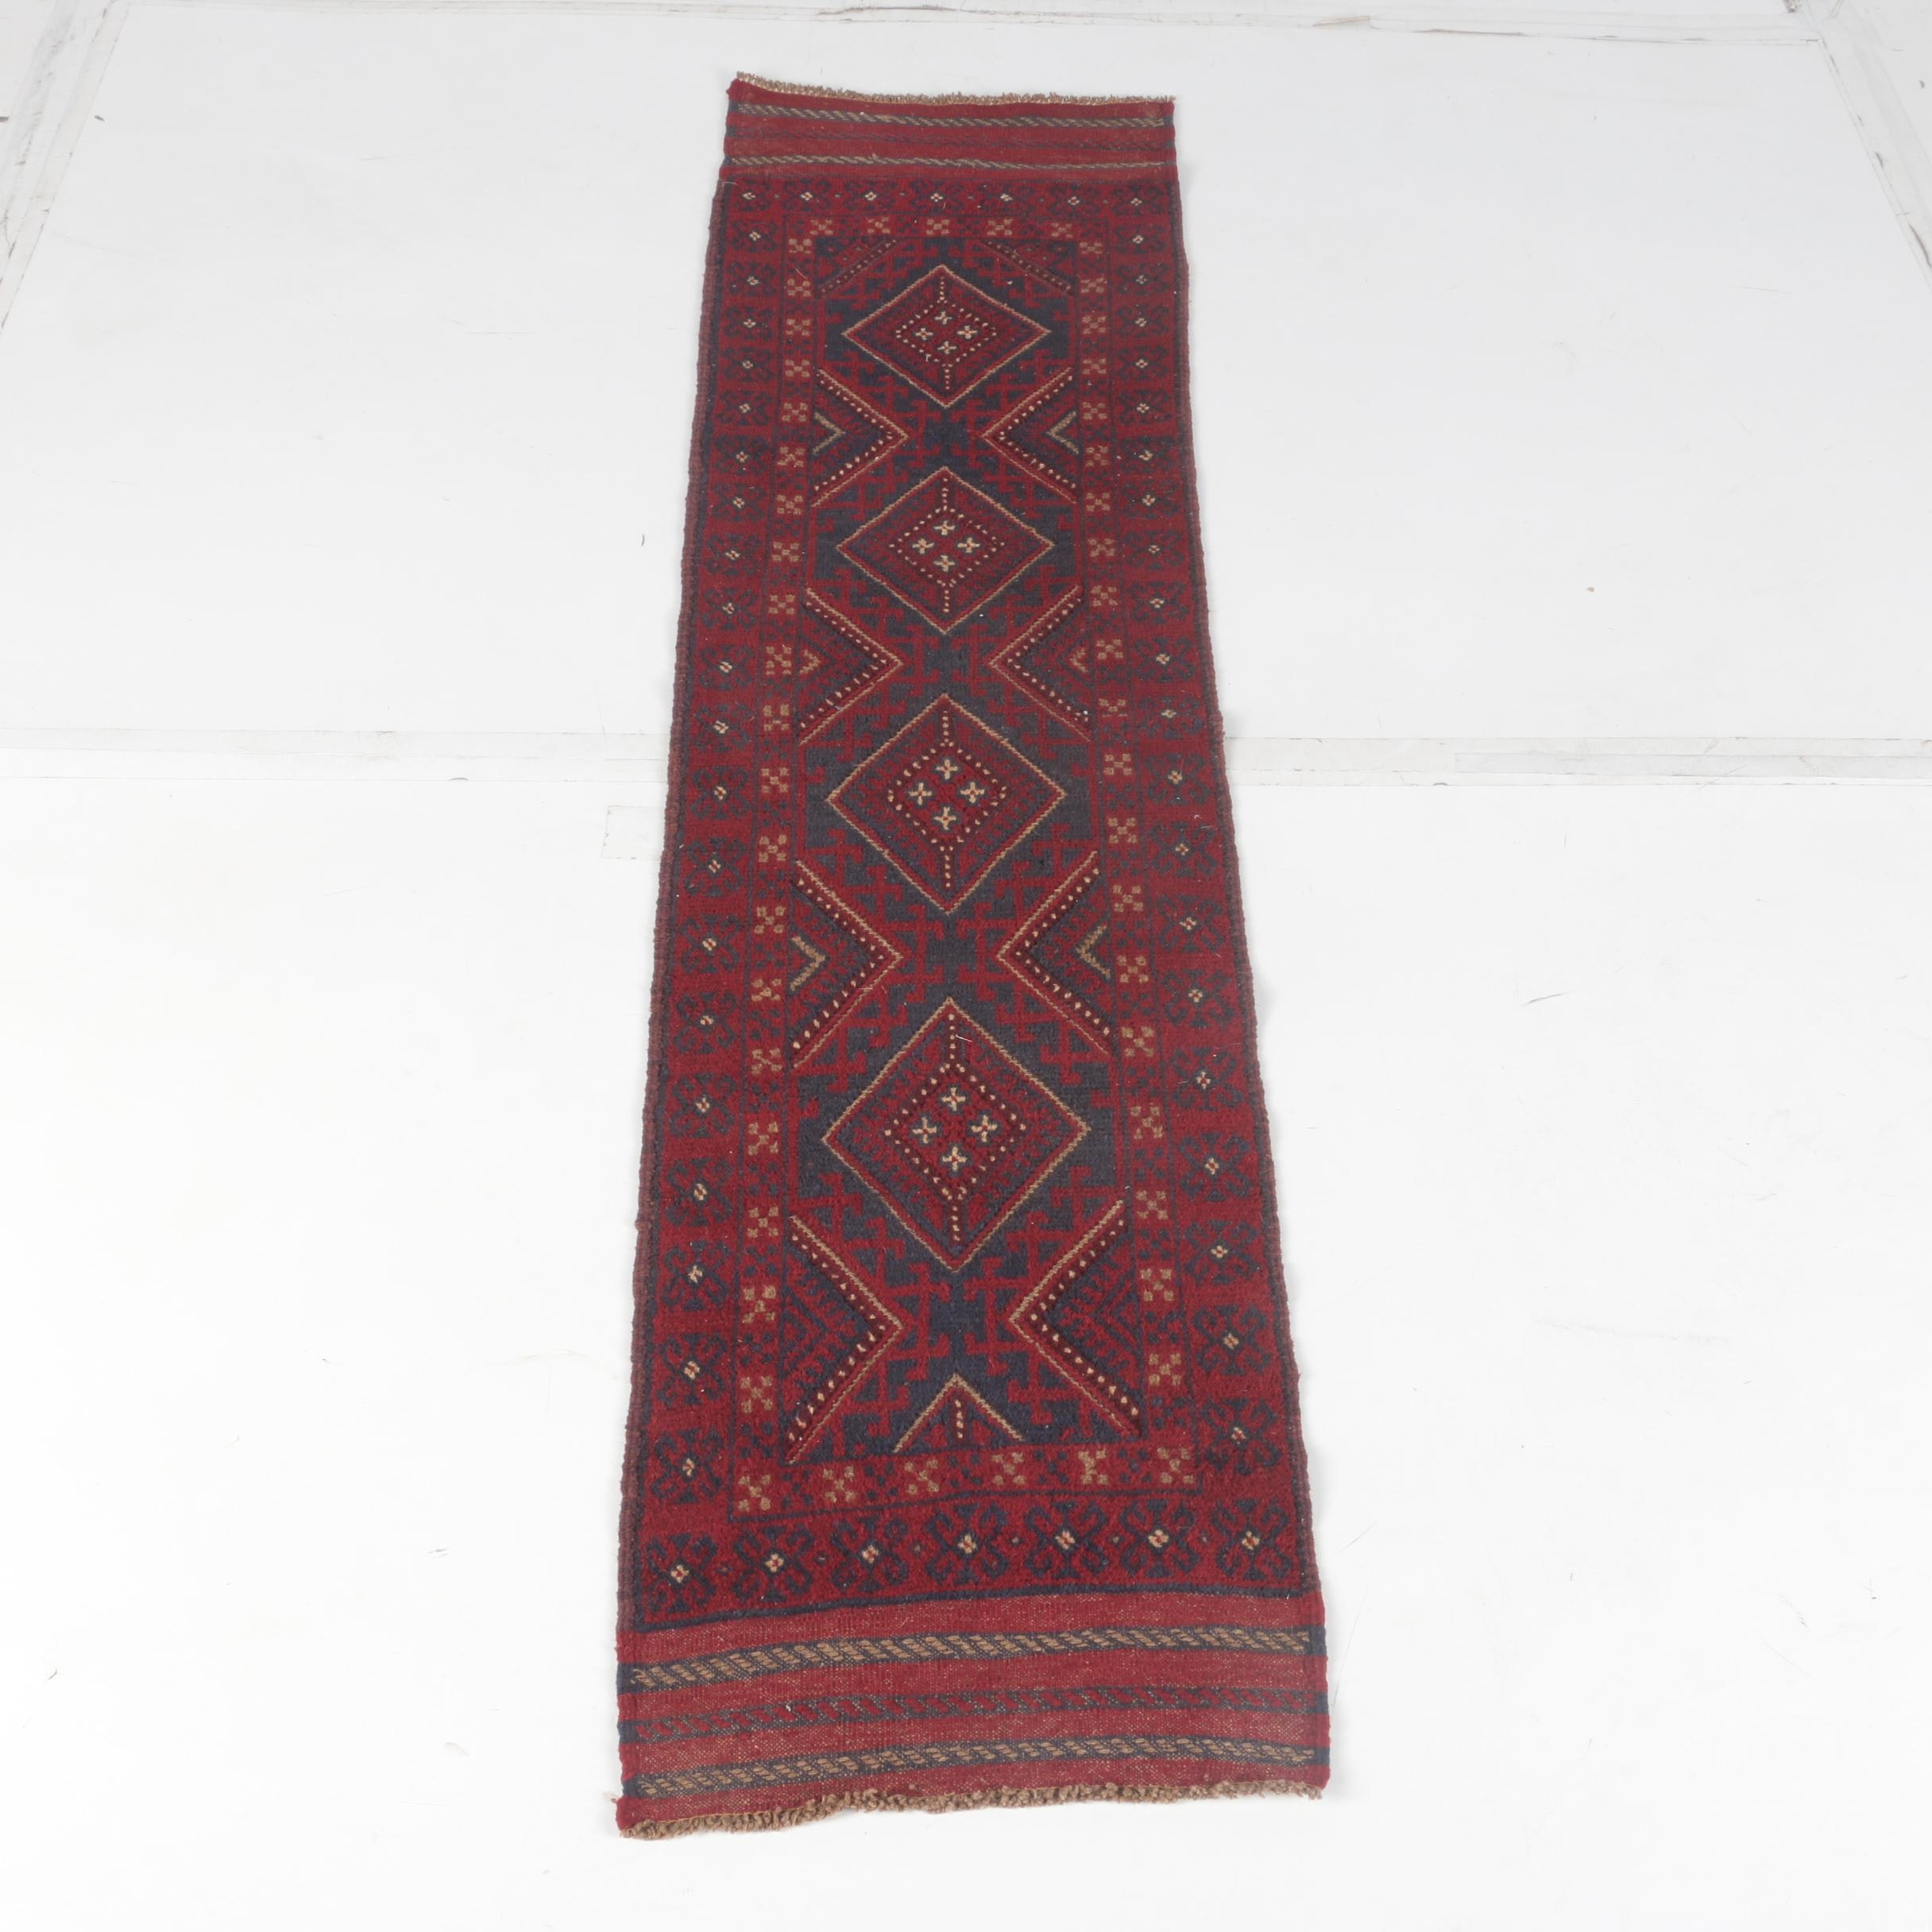 Hand-Knotted and Embroidered Baluch Carpet Runner